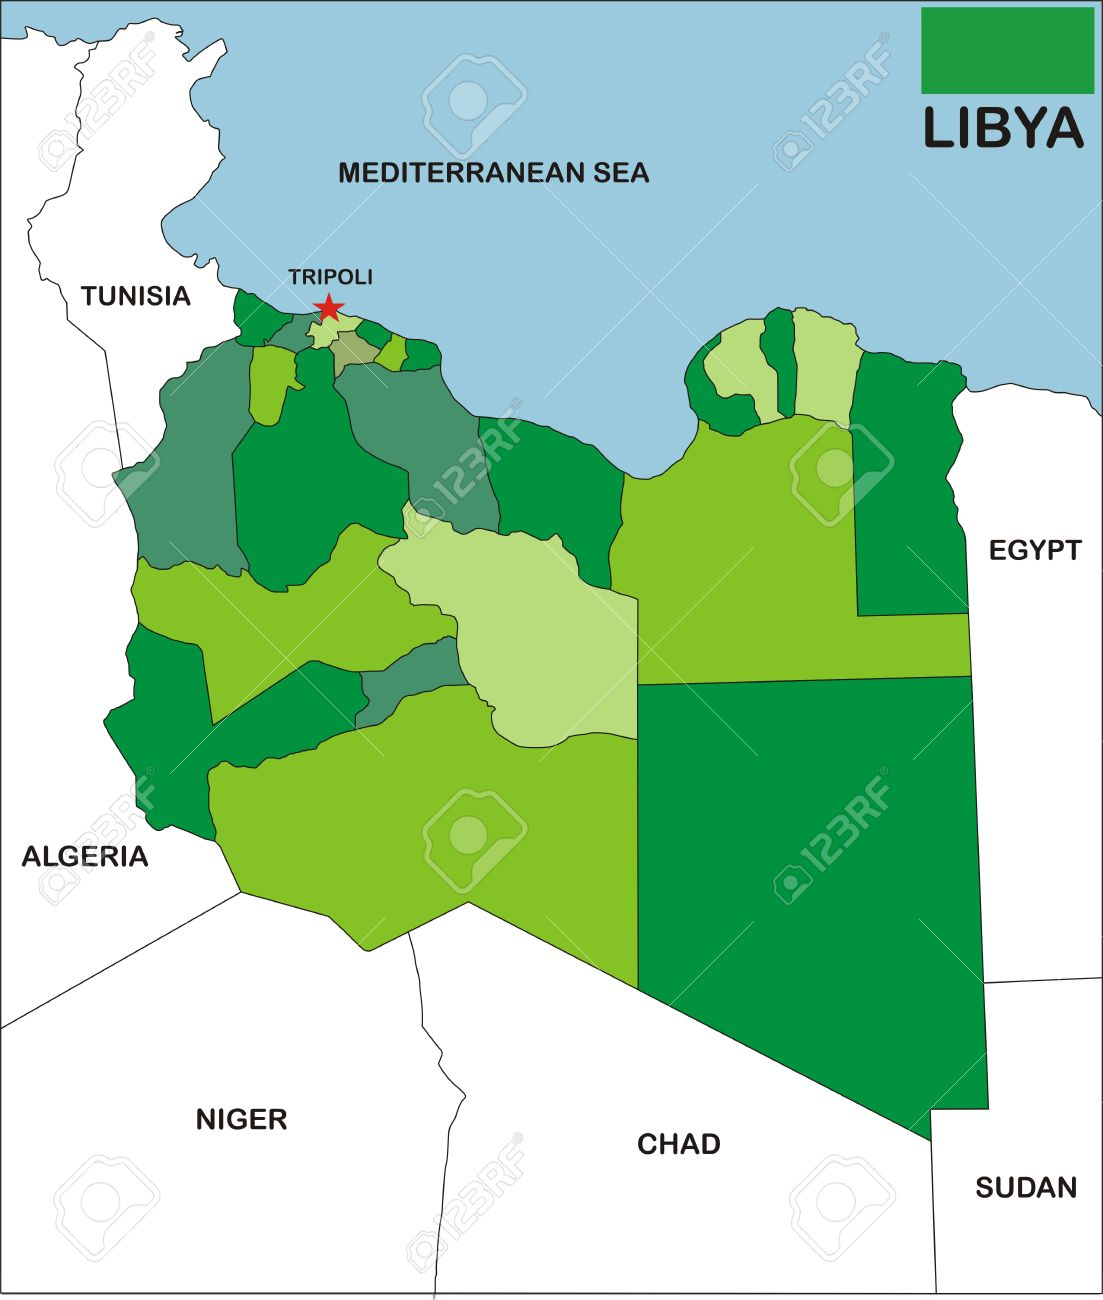 Political Map Of Libya Country With Neighbors And National Flag - Tunisia country political map